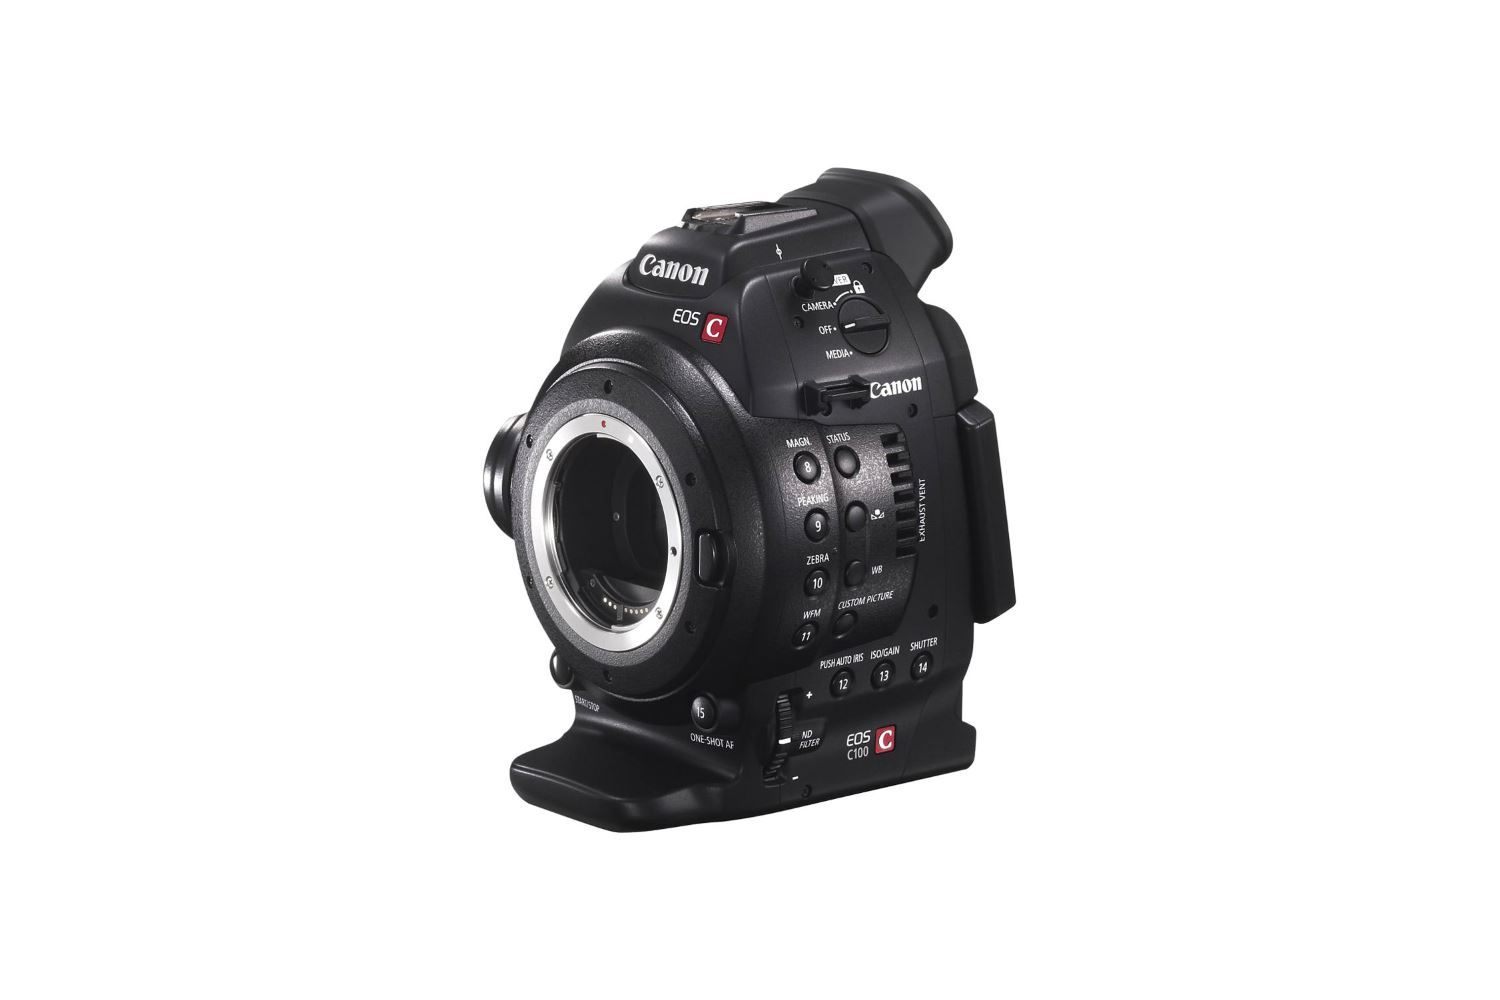 2 camera, FullHD/1080p - - 2 Canon C100's for wide & tele- Blackmagic ATEM video switcher with lower thirds, title cards & other graphics/videos- 2 operators